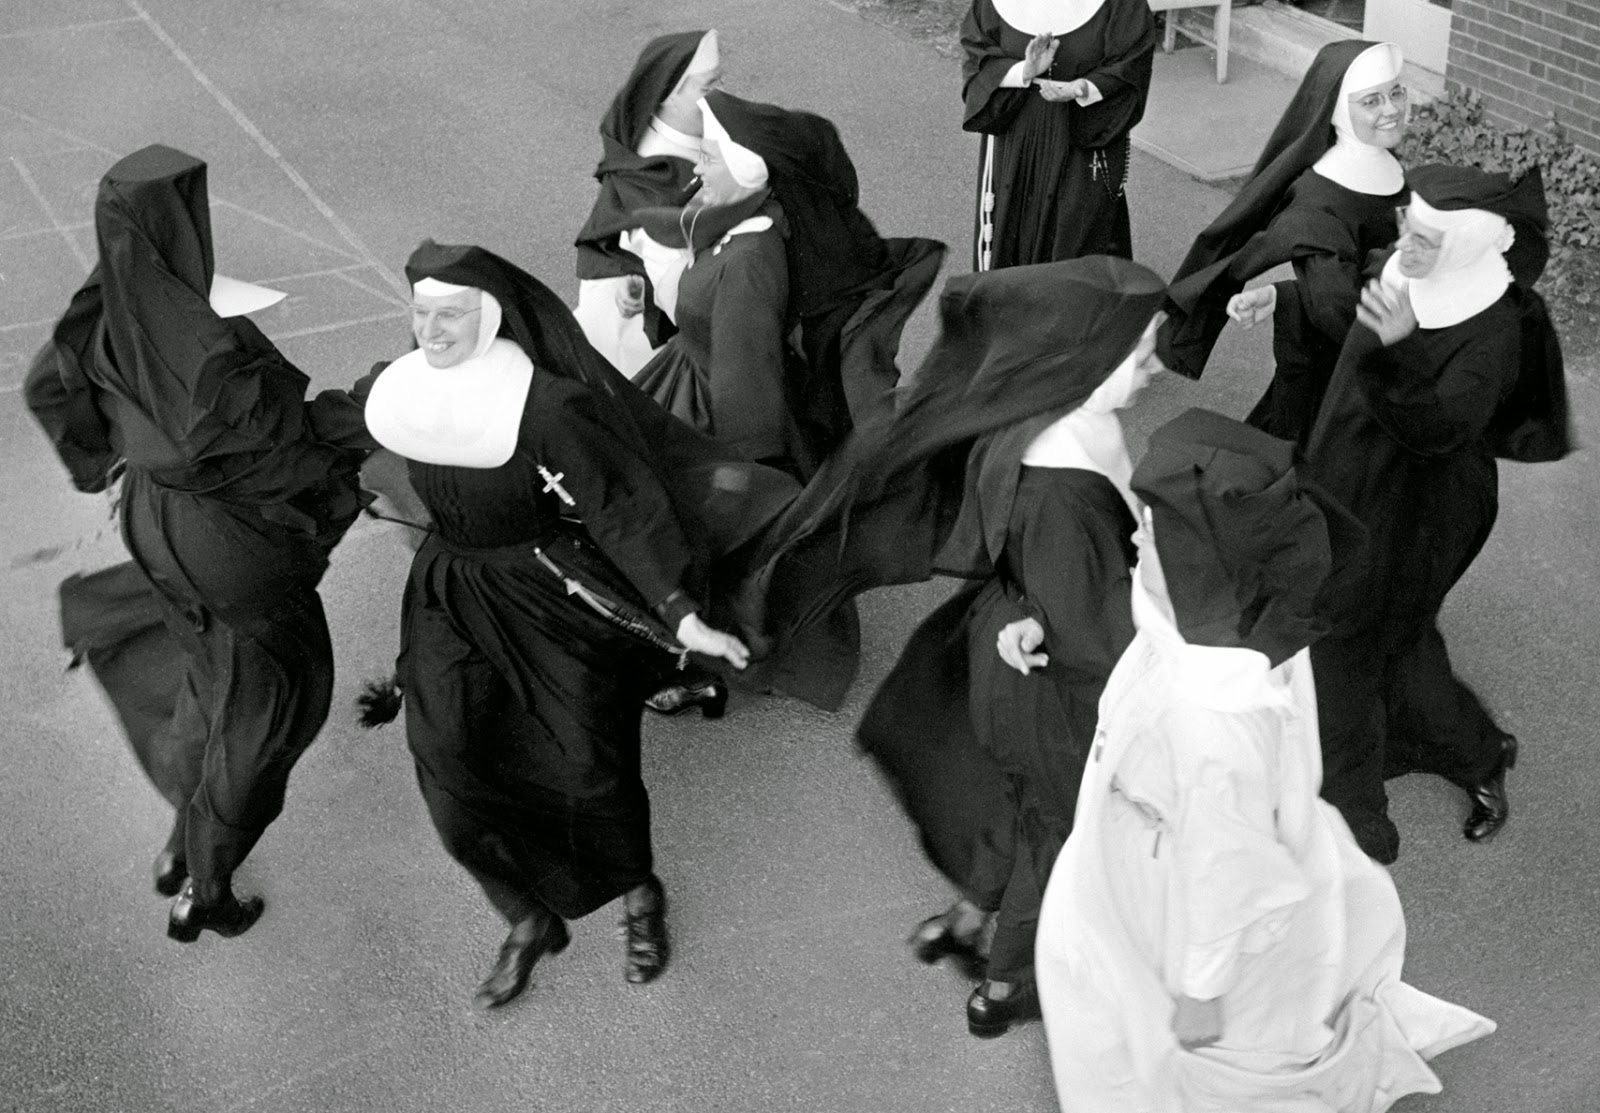 Vintage Looking Fan Nuns Nuns Nuns Here Are 25 Vintage Pictures Of Nuns